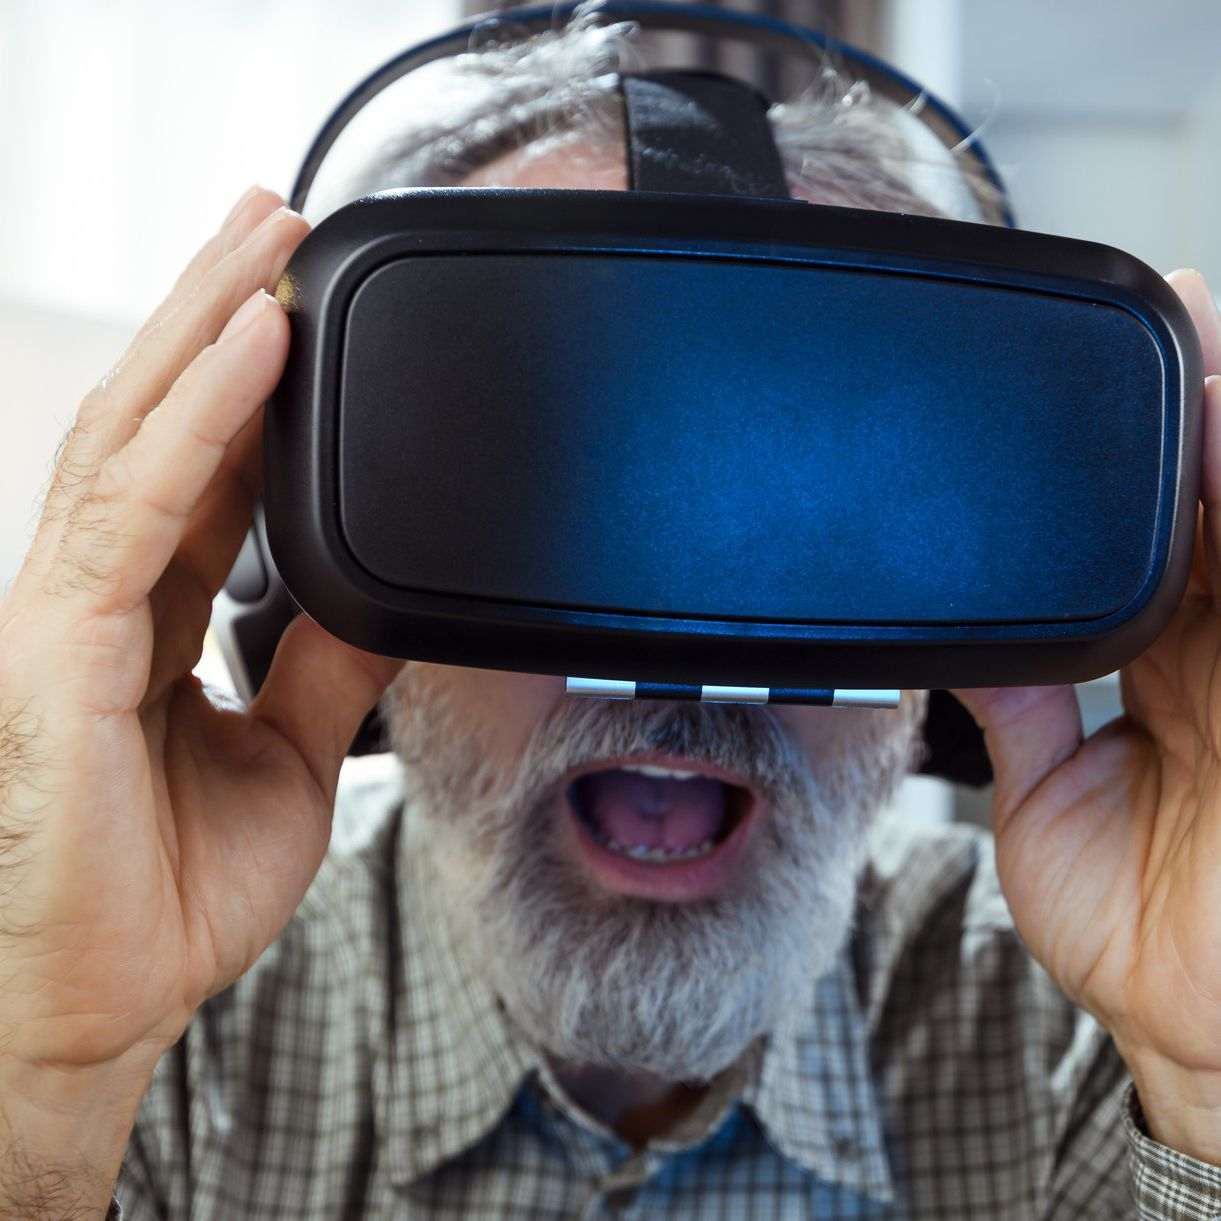 Let's Get Real About VR and Mixed Reality